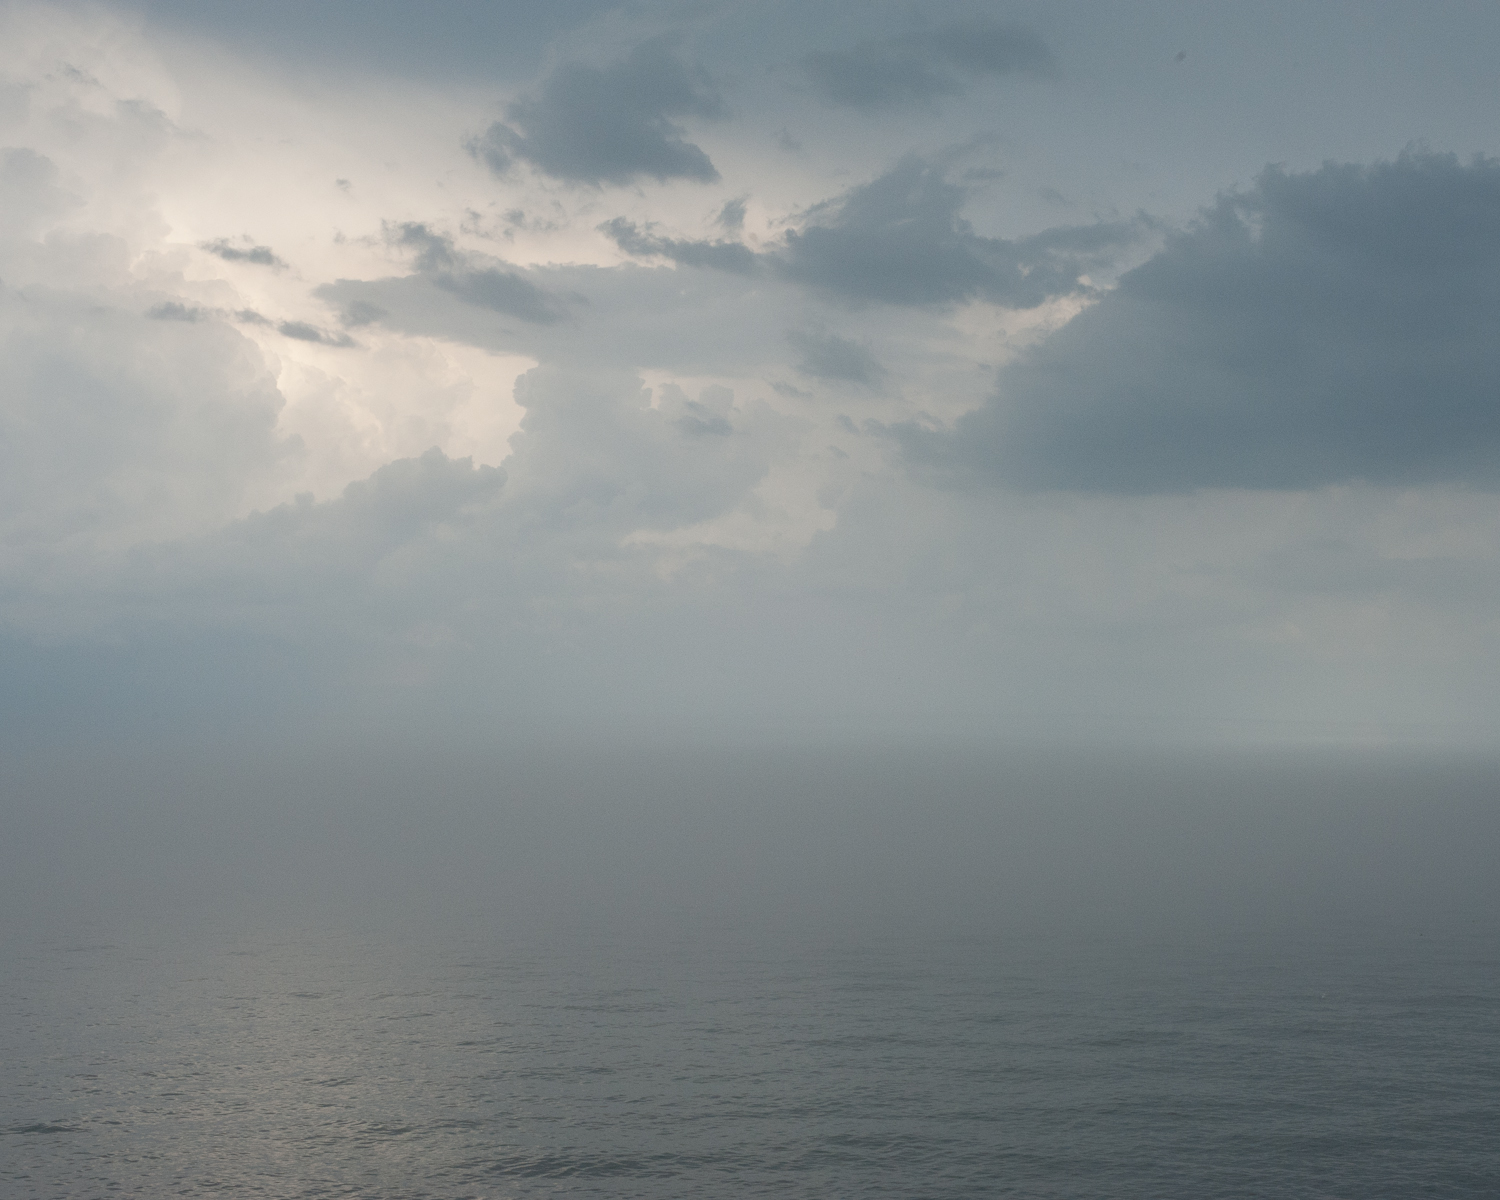 A thunderstorm moving out over Lake Superior near Grand Marais, Minnesota. July, 2013.